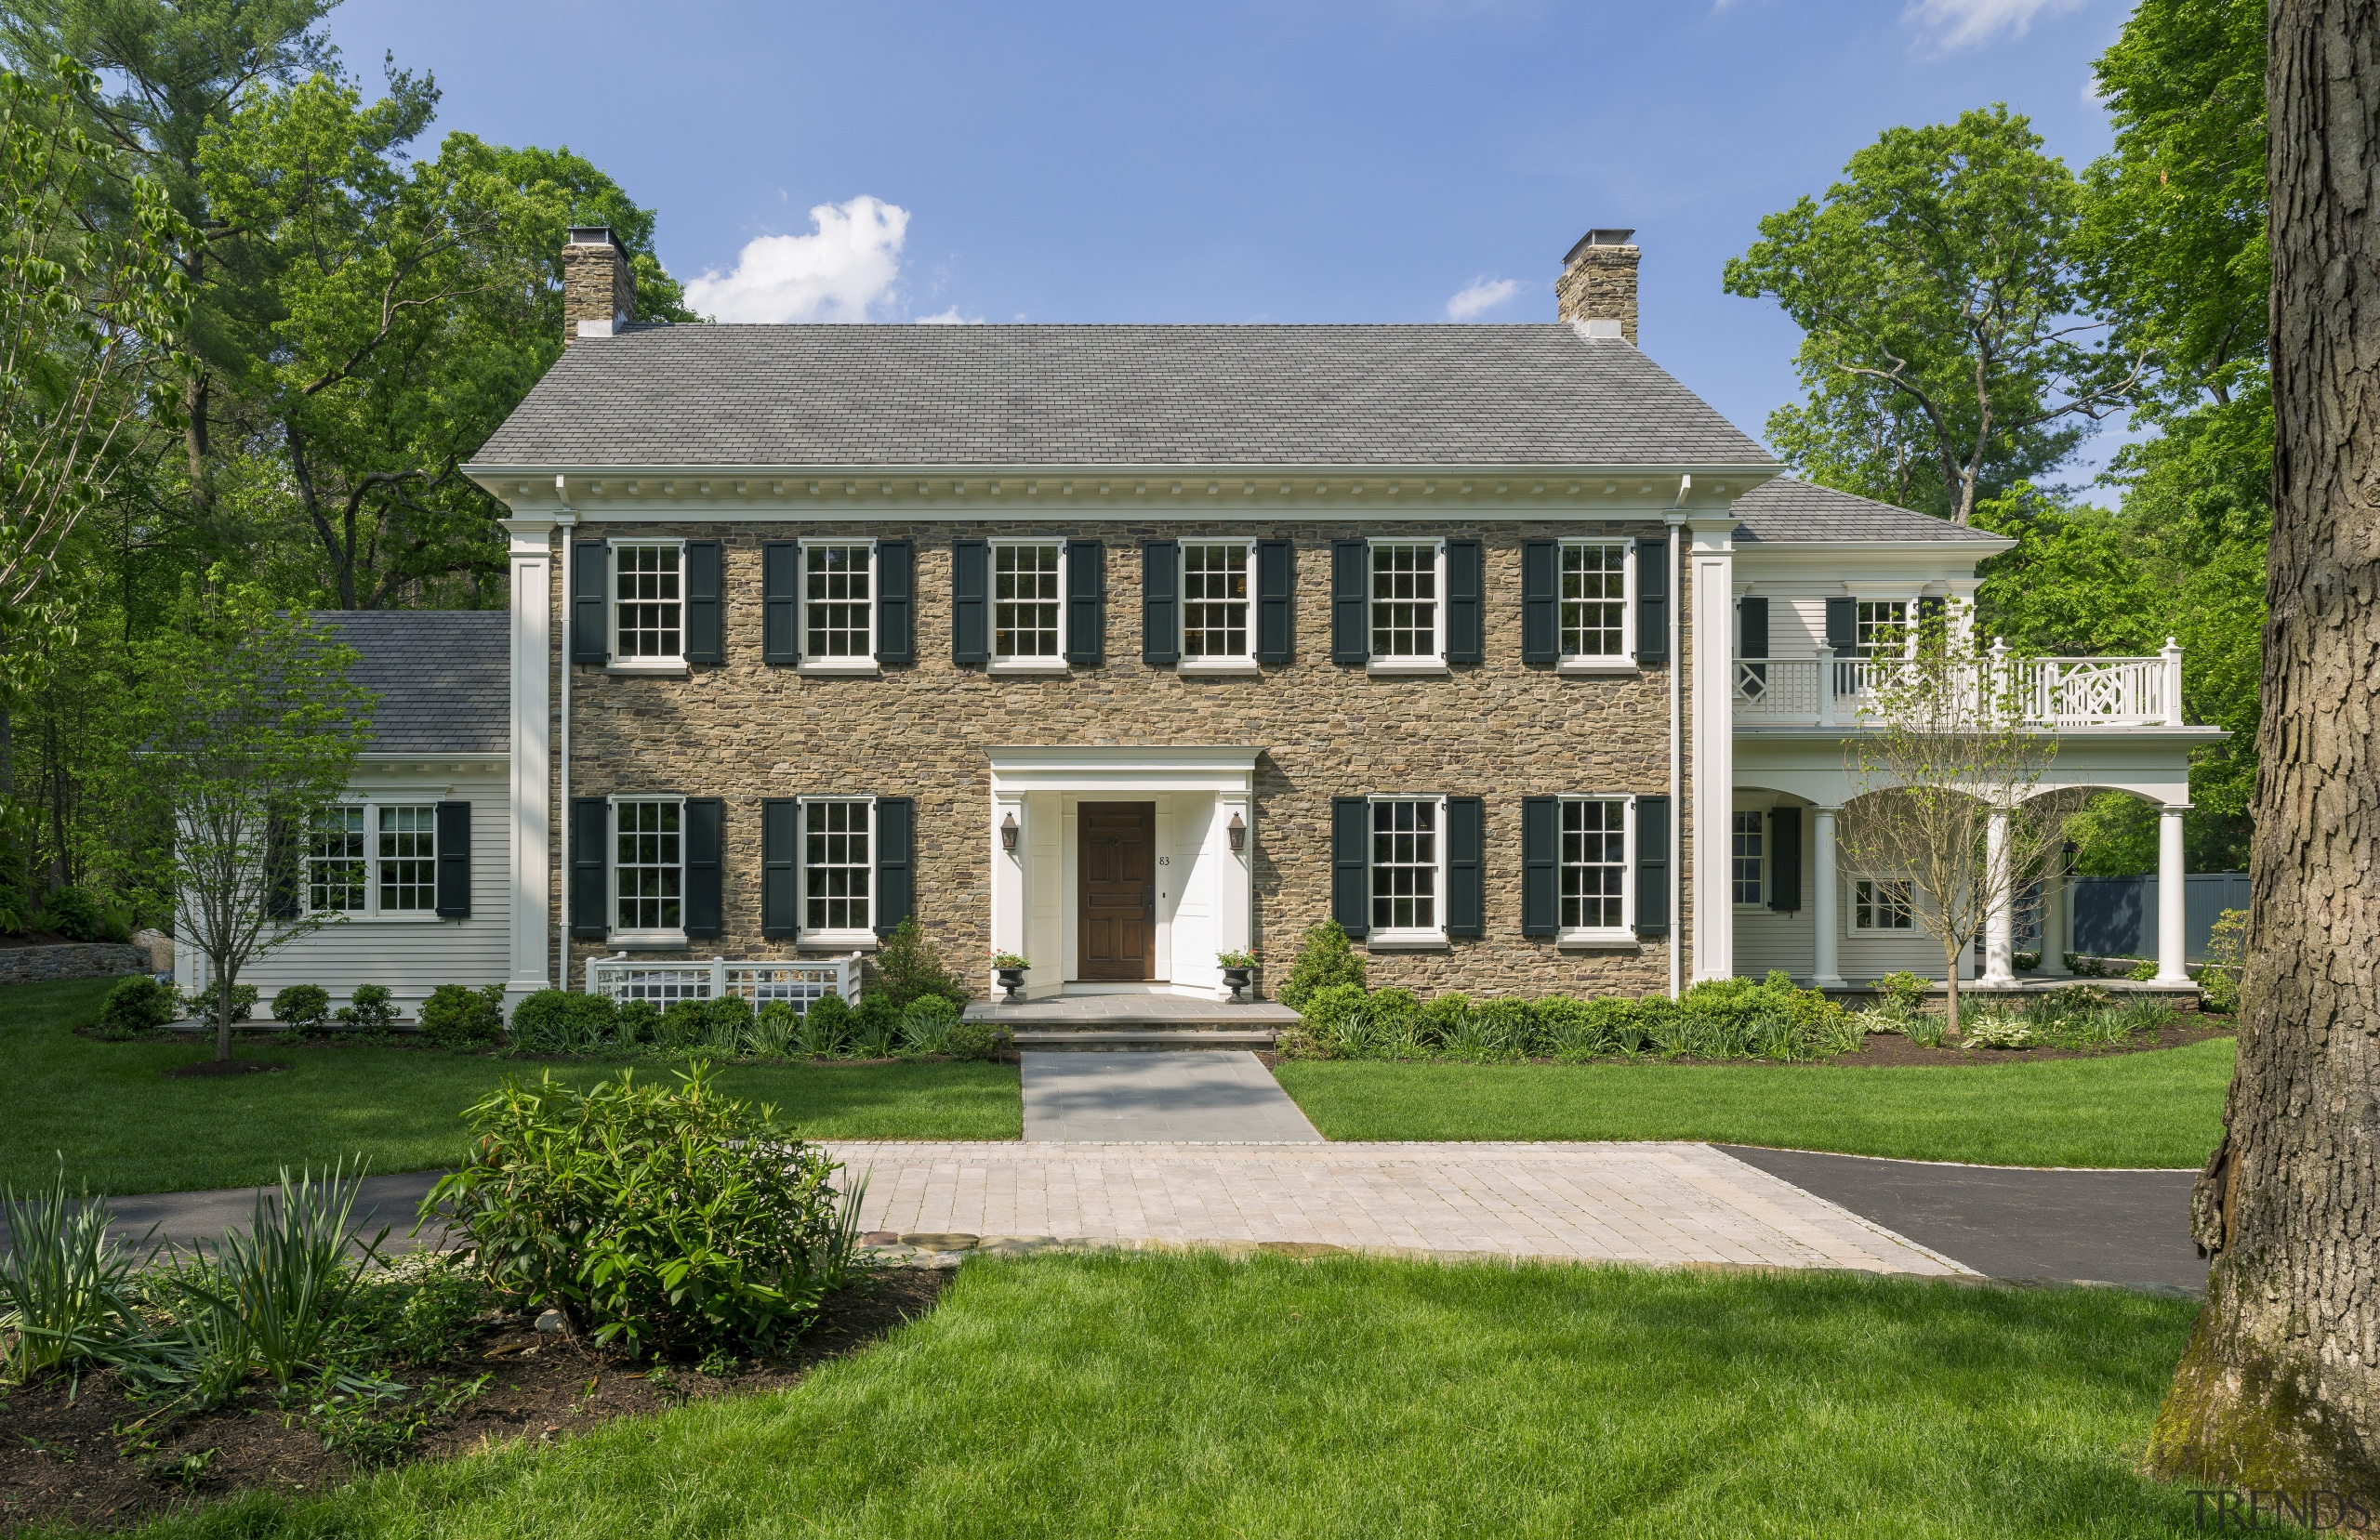 Curb appeal is assured with this New England cottage, estate, farmhouse, grass, historic house, home, house, manor house, mansion, plantation, property, real estate, residential area, window, green